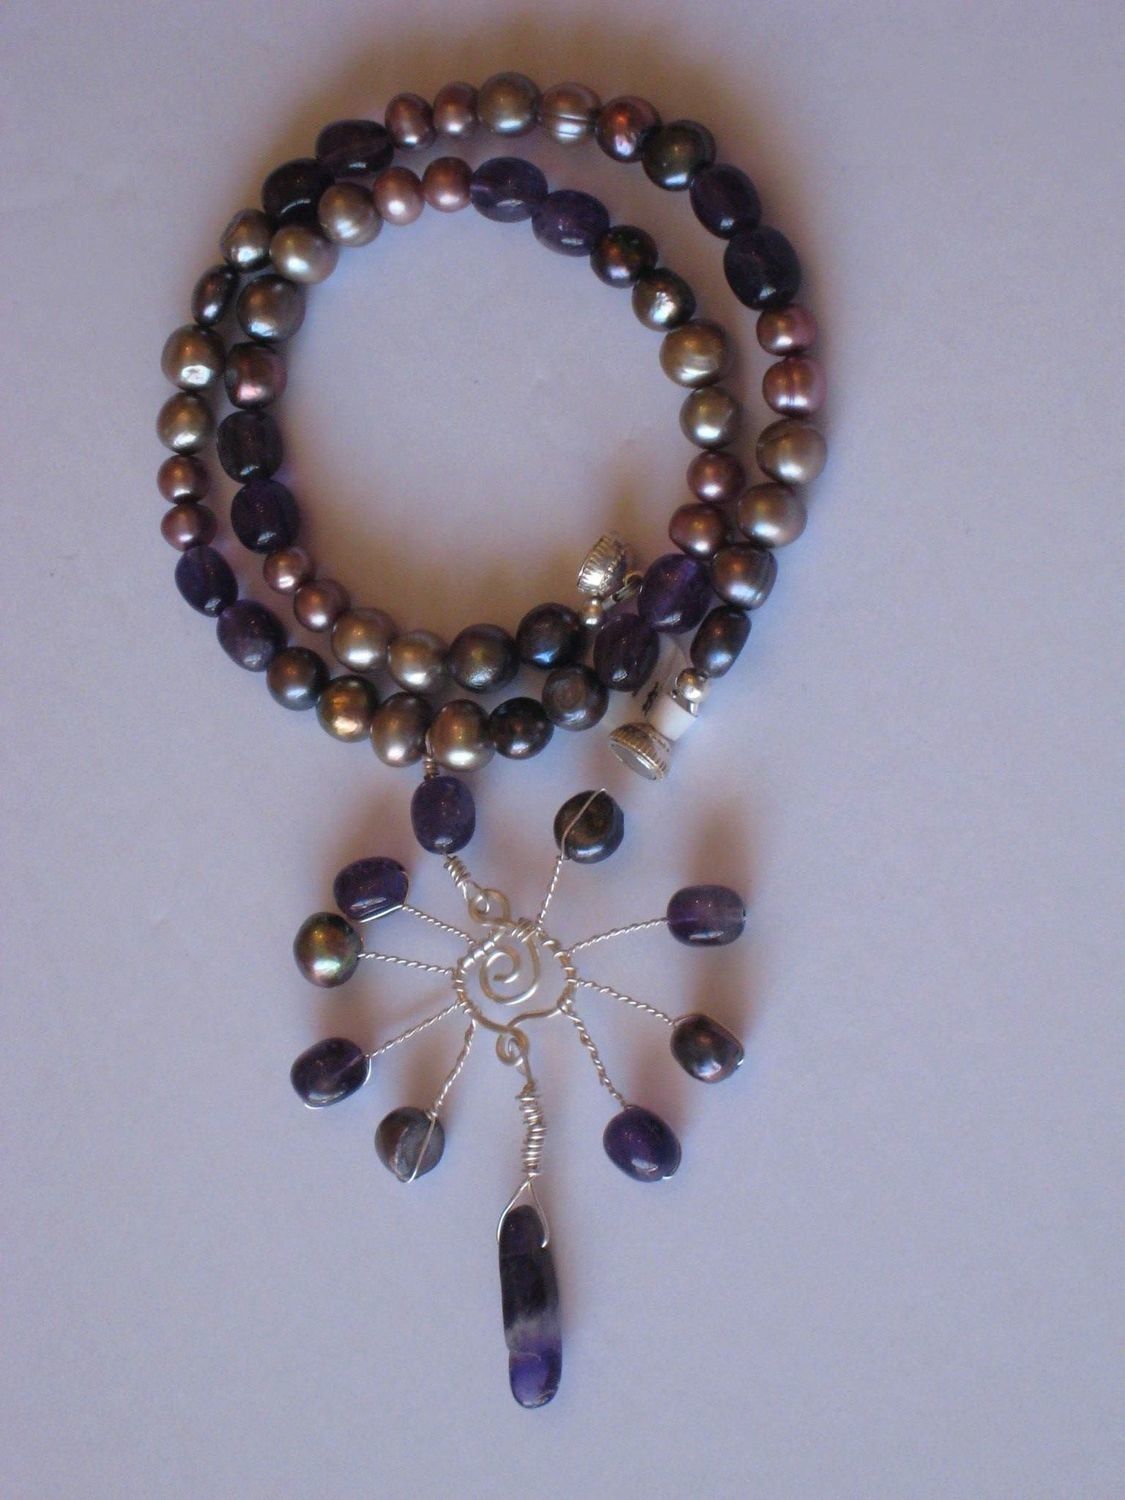 AMETHYST PEARL SPIRAL NECKLACE 2B/ COLLIER AMETHYSTE PERLES SPIRALE 2B